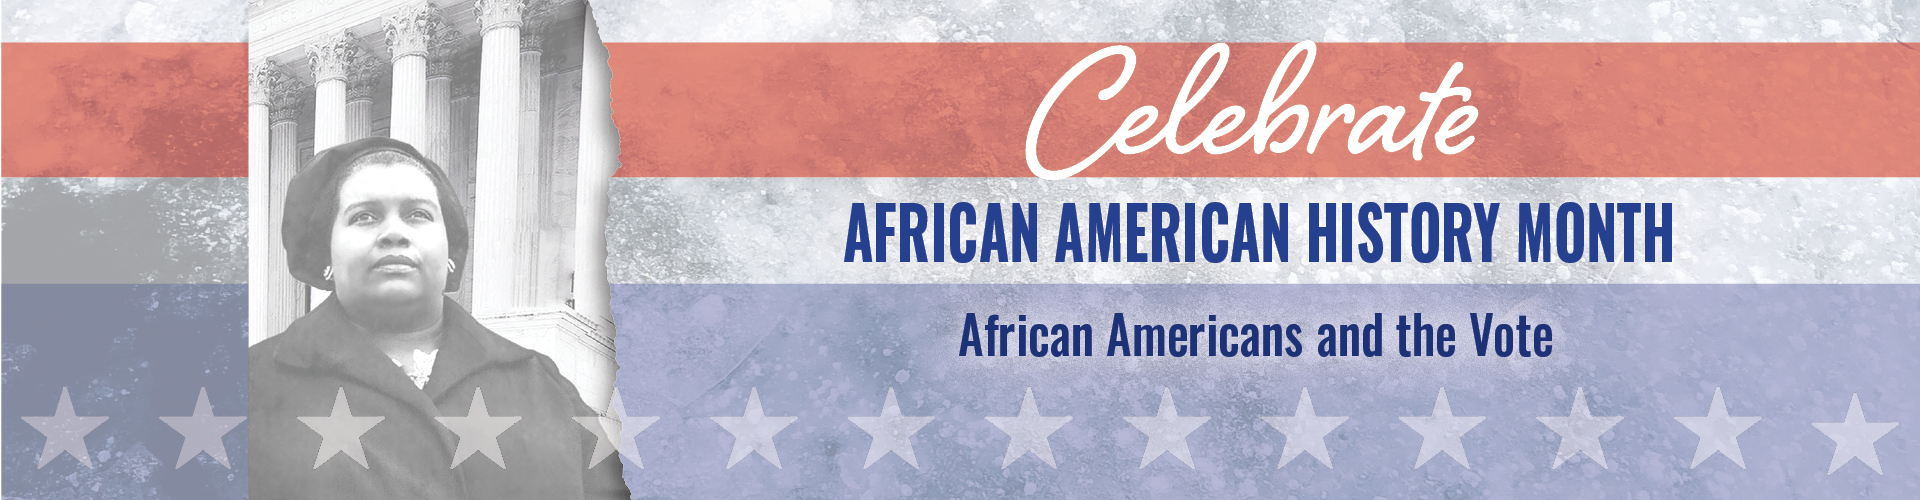 African American History Month. African Americans and the Right to Vote. Image: Evelynn Butts